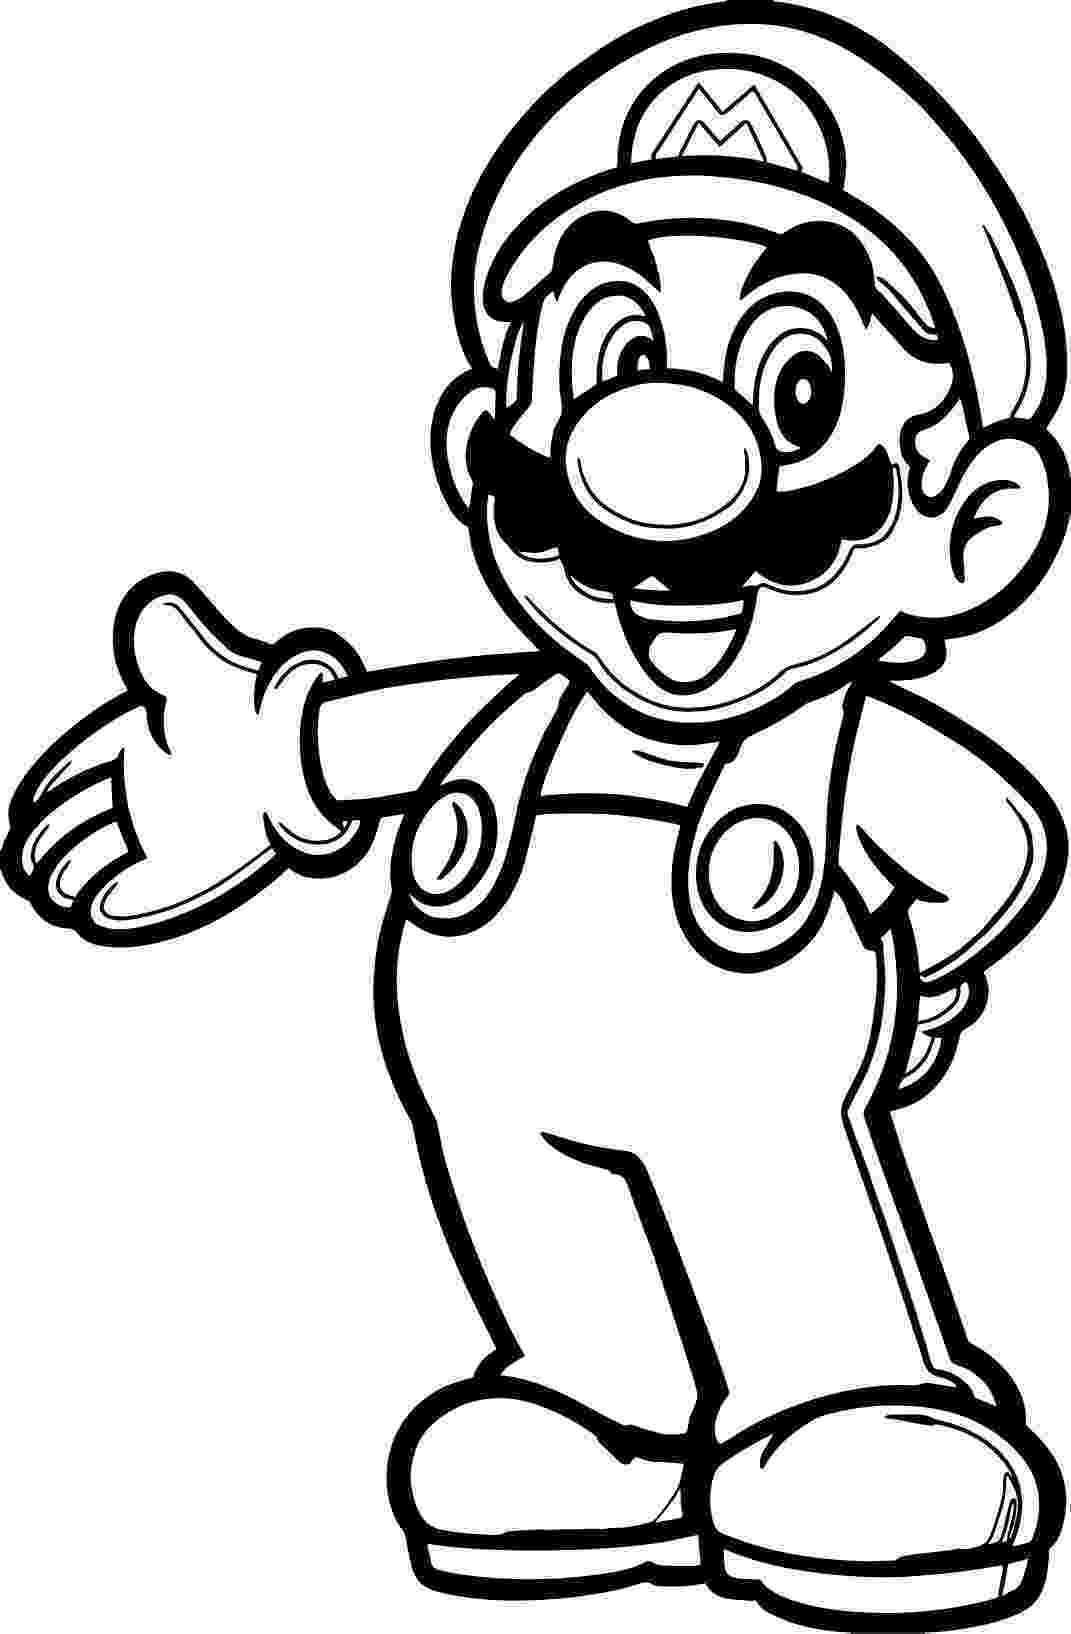 super mario bros pictures to print and colour coloring pages mario coloring pages free and printable mario pictures to bros print colour super and